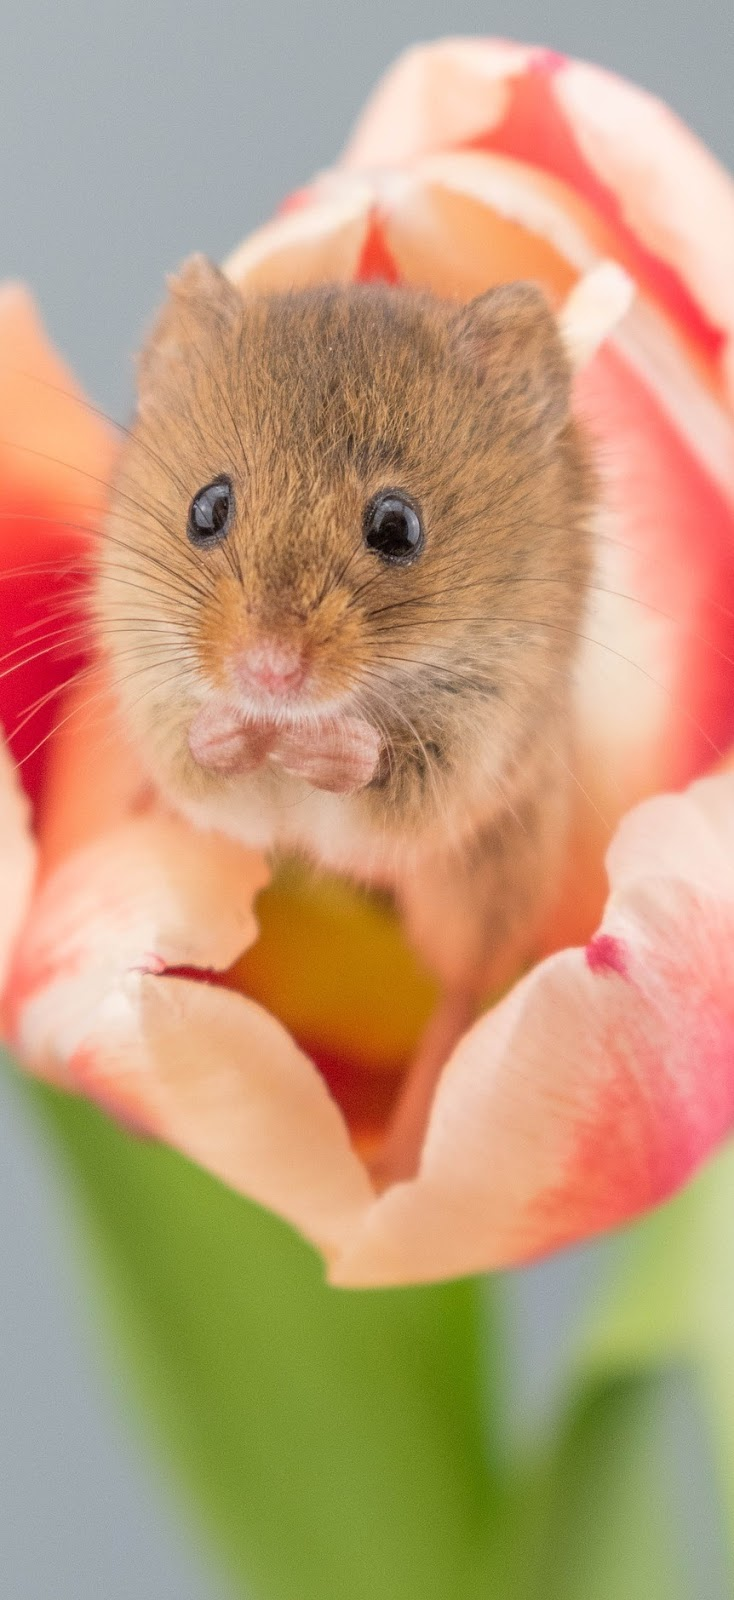 Cute little harvest mouse in a tulip flower.